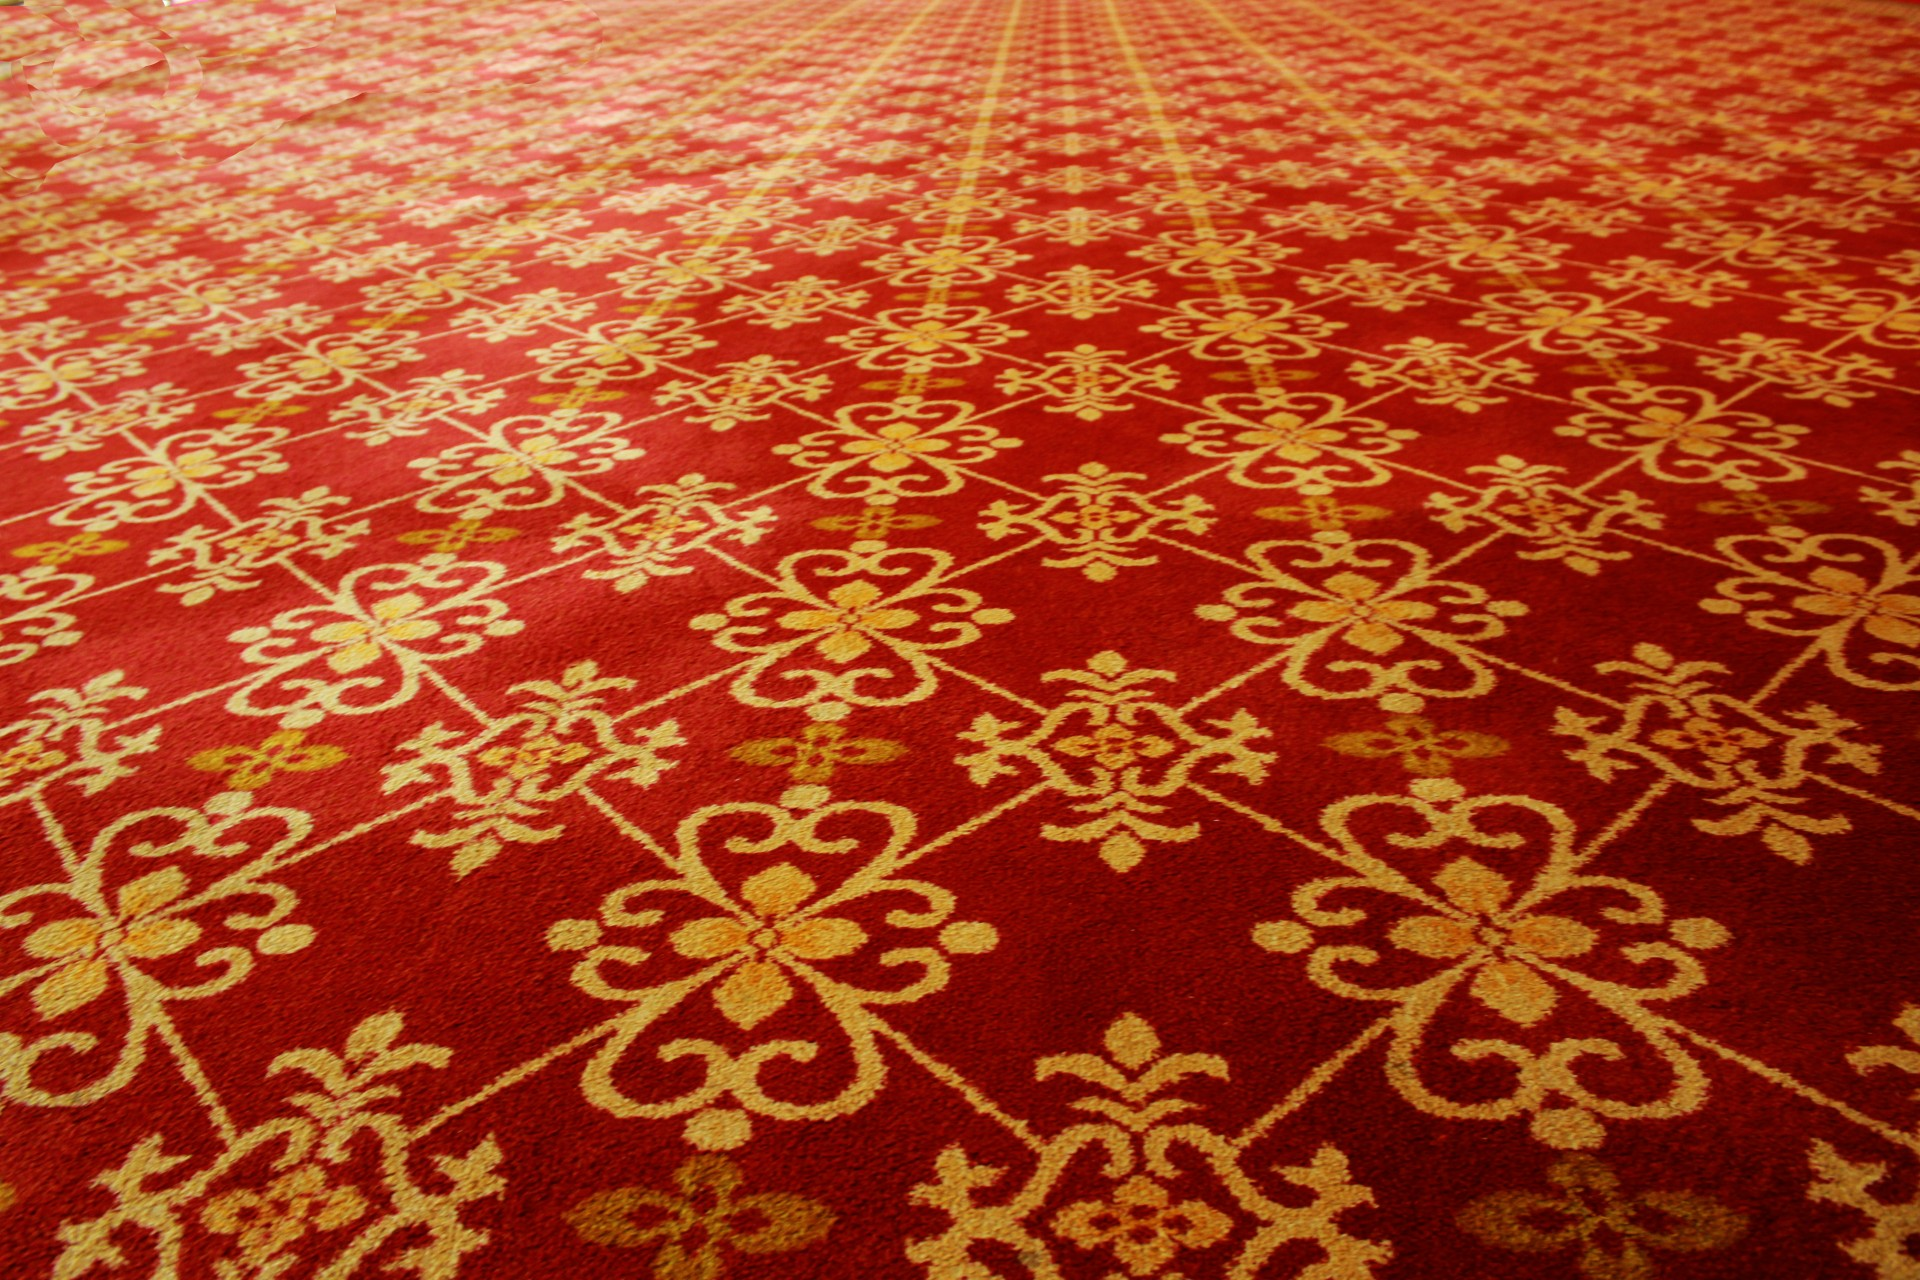 Aalishan Carpets and Wallpapers, carpets in mundhwa, carpet dealers in mundhwa, floor carpets in mundhwa, customized carpets in mundhwa, imported carpets in mundhwa, best carpets in mundhwa, best carpet dealers in mundhwa, best, top.